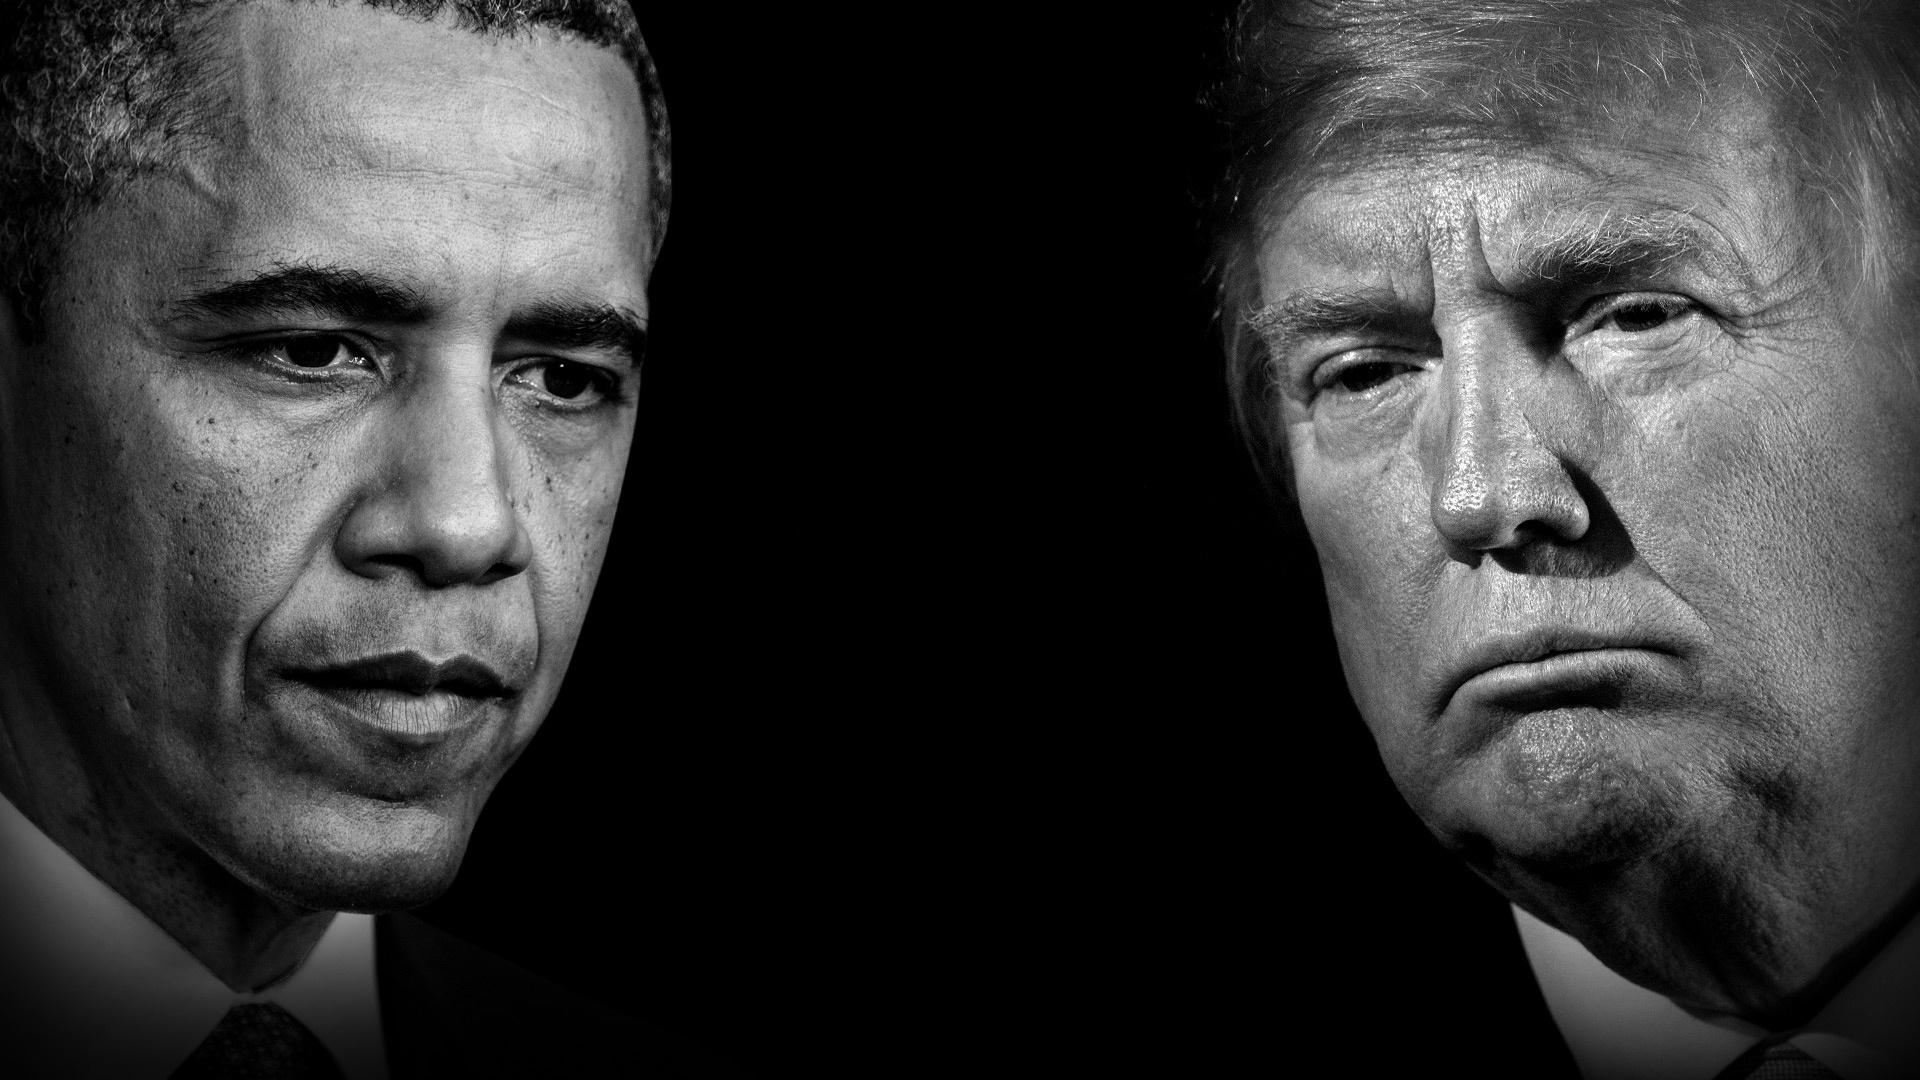 America's Great Divide: From Obama to Trump (Part One)